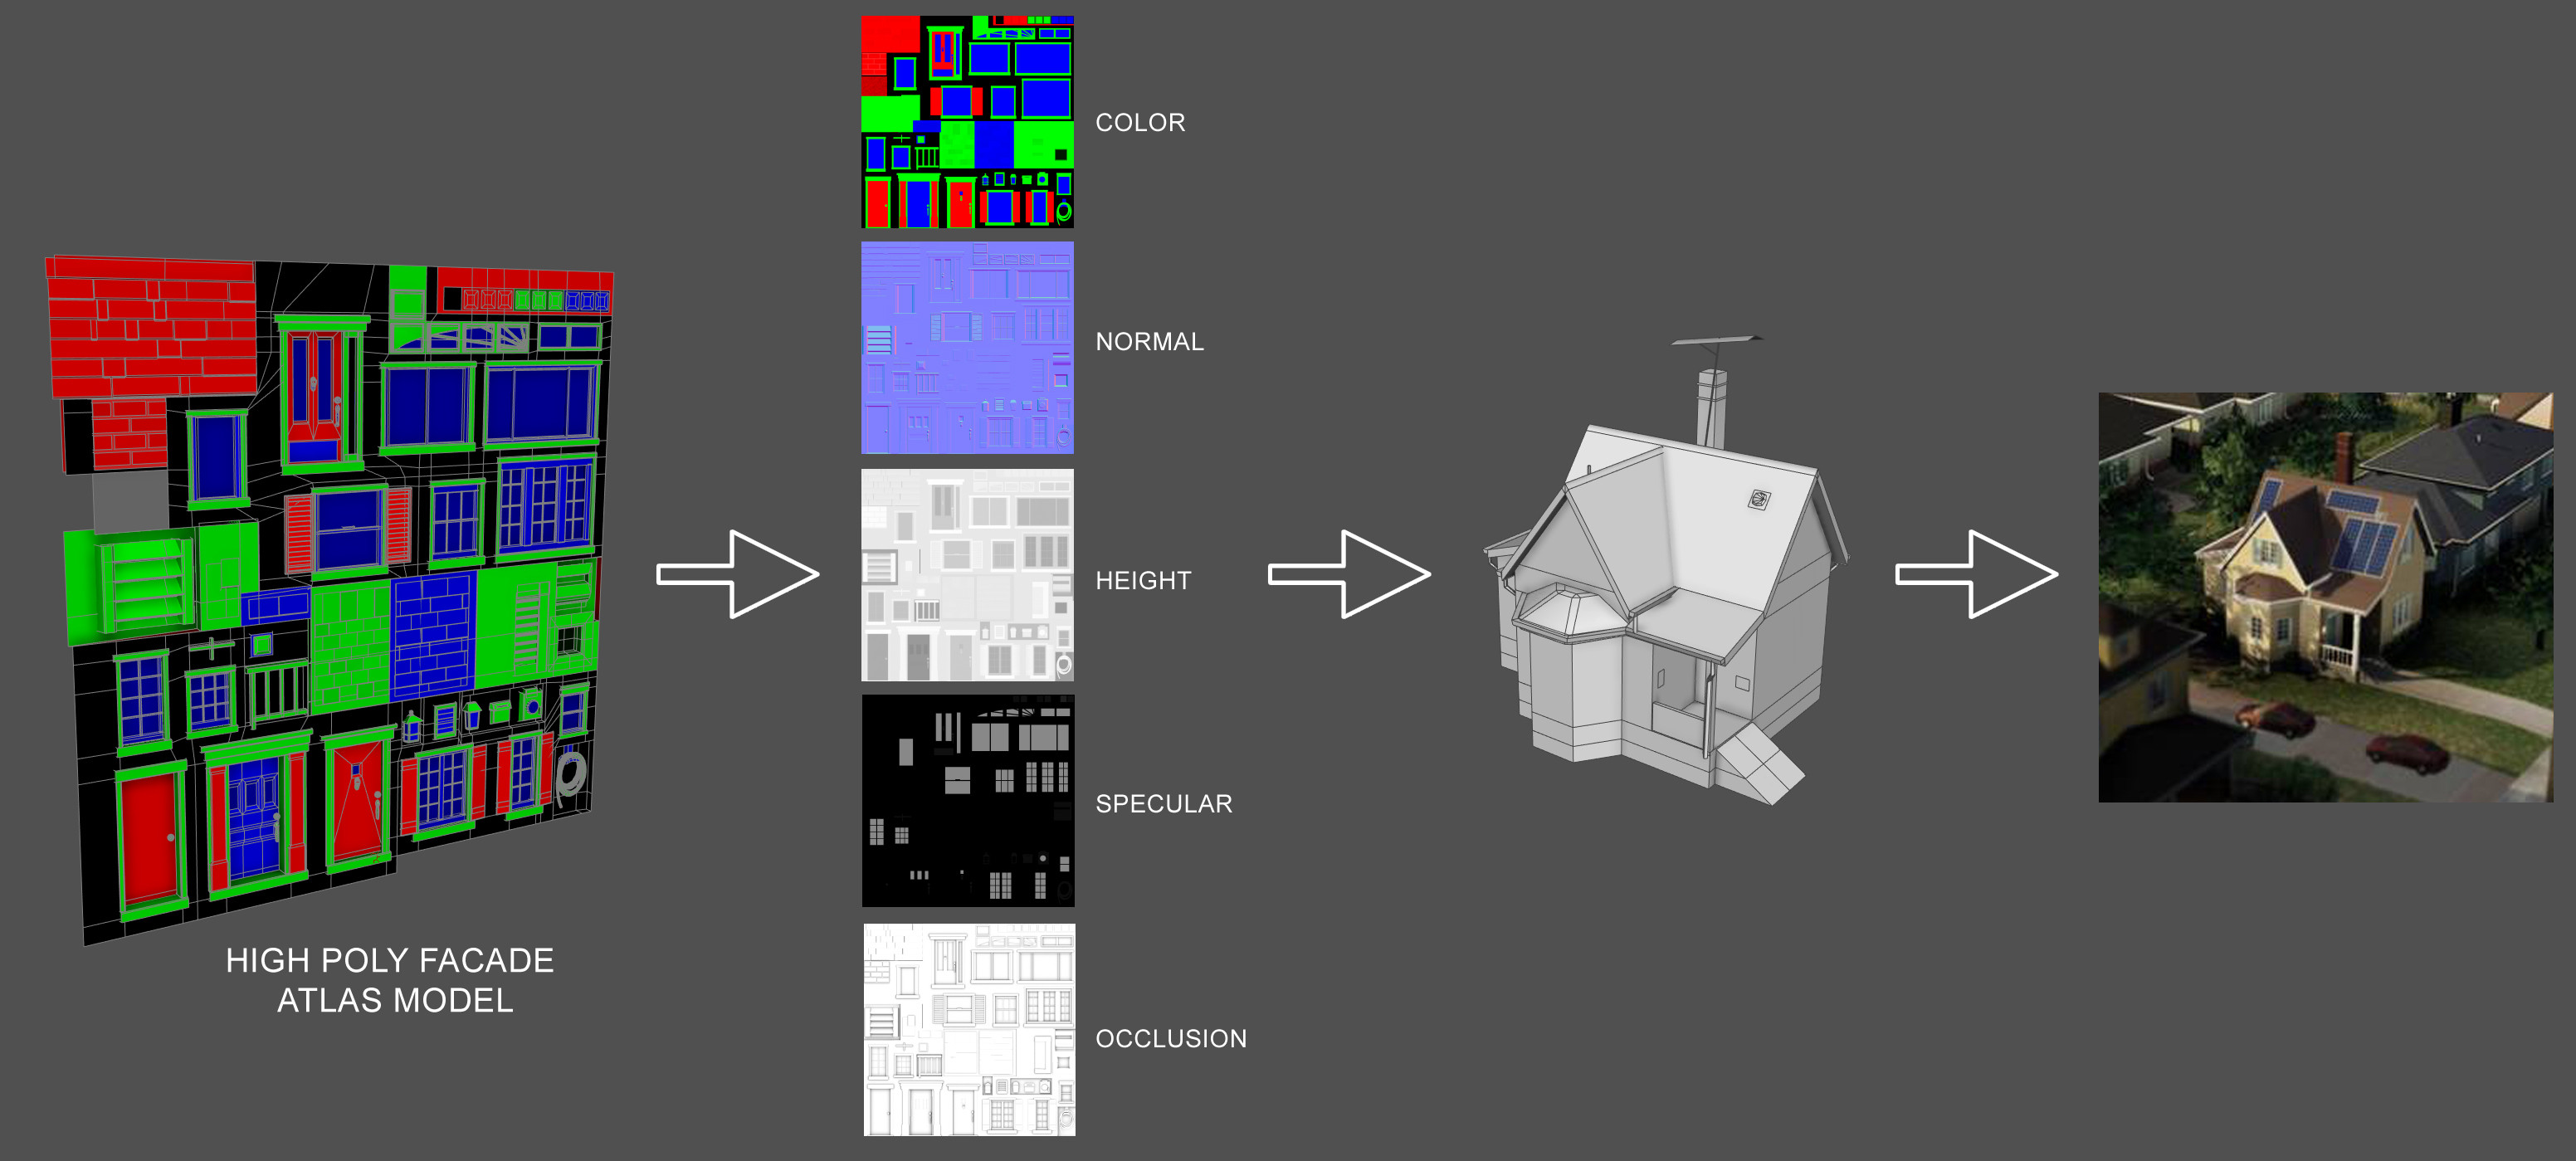 Buildings were textured using a procedural system which utilized a shader that could overlay 2 UV regions from a single atlas. Each UV tile could be spread apart with an offset to get the proper spacing between windows and other detail elements